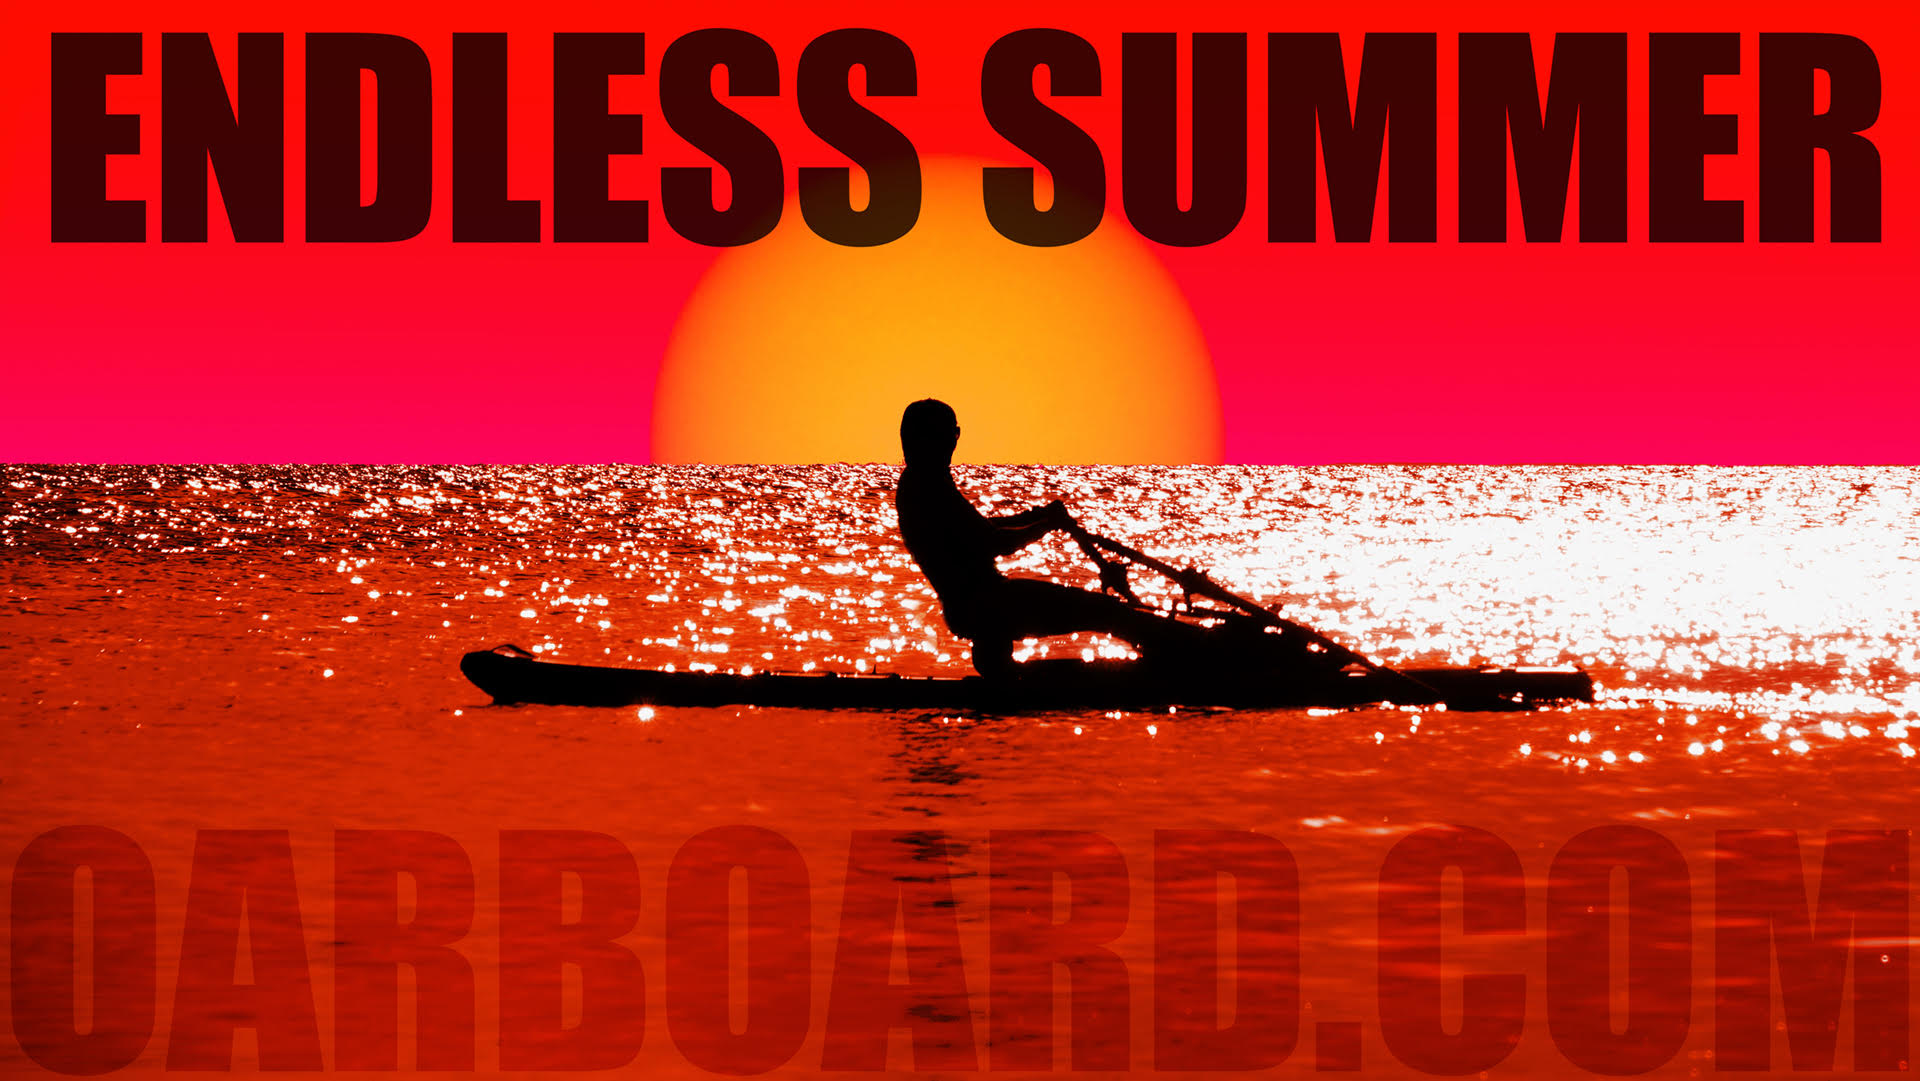 Endless-Summer-Oar-Board-All-Year-Rowing